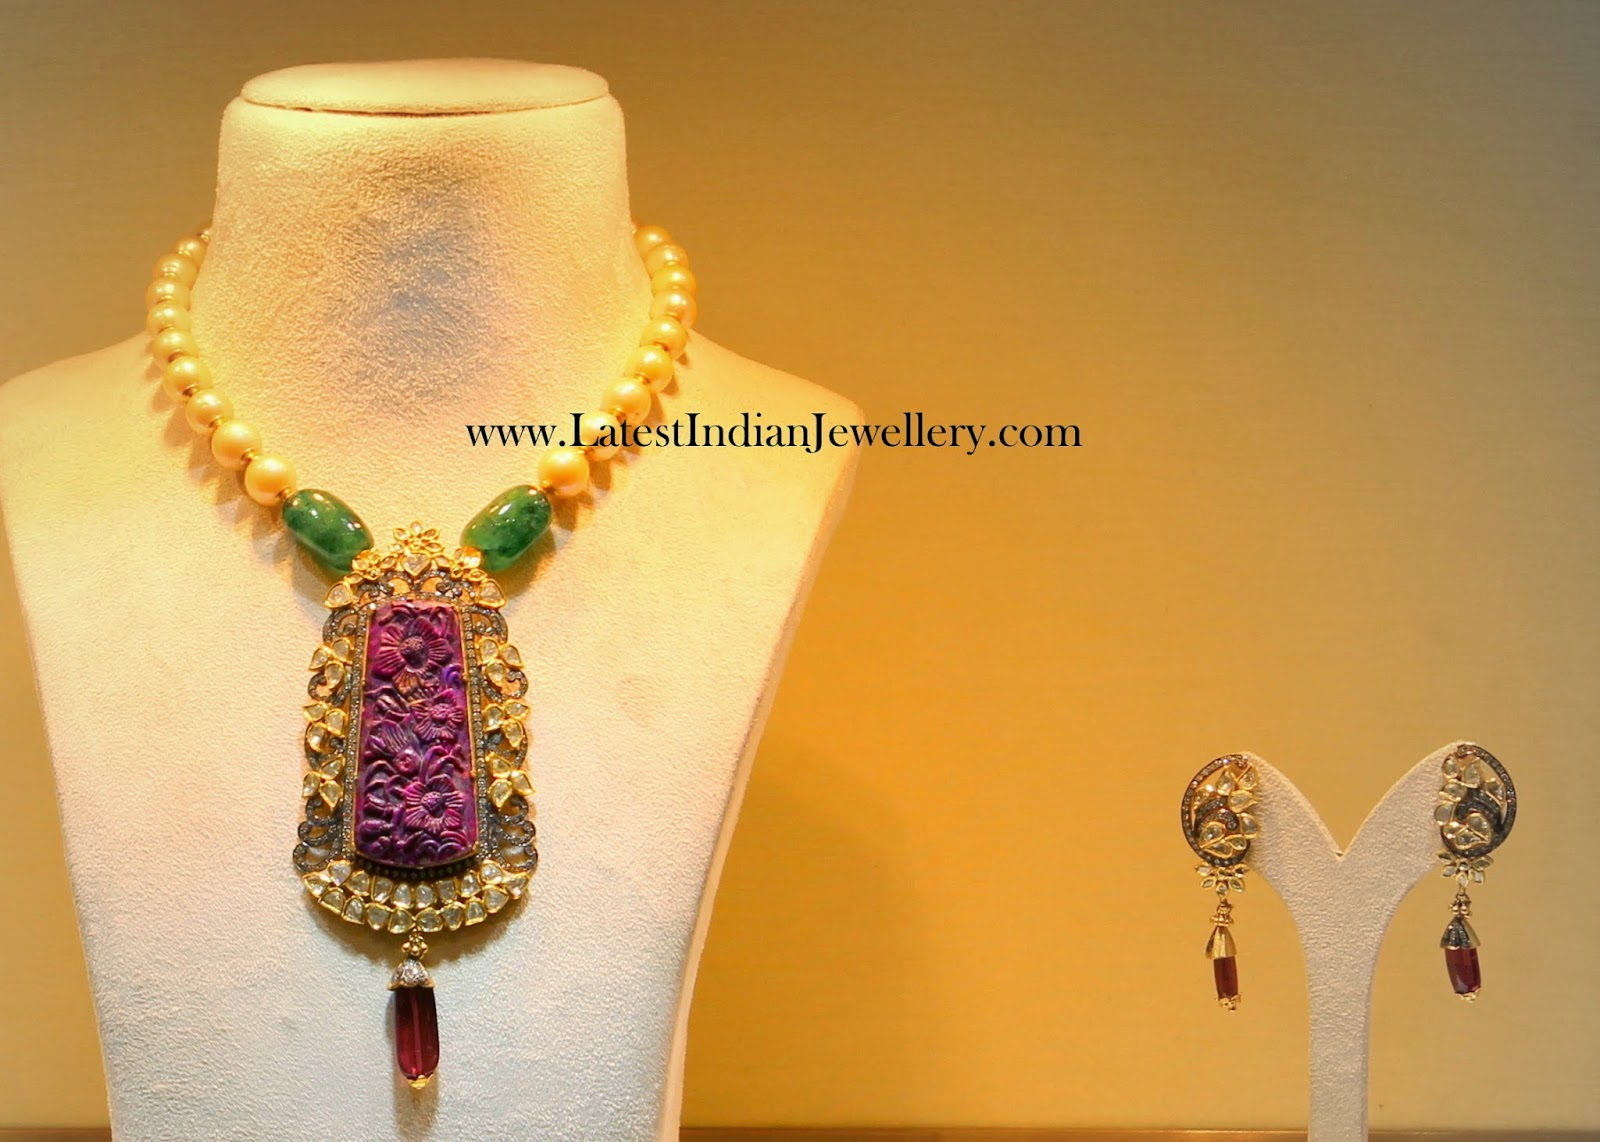 Unique Pearl Necklace with Crafted Ruby